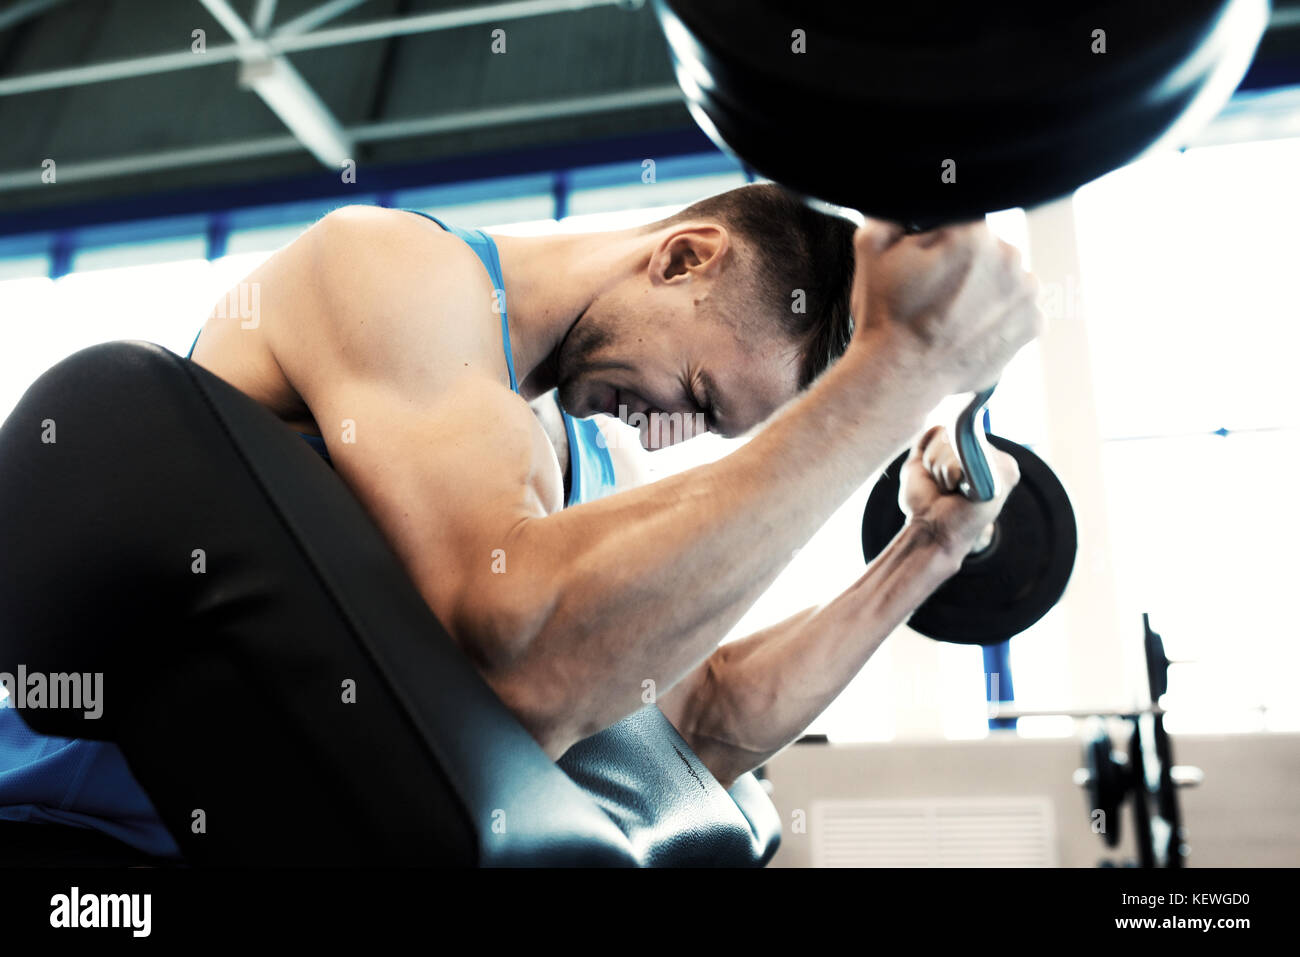 Strong Man Working Out with Barbell - Stock Image